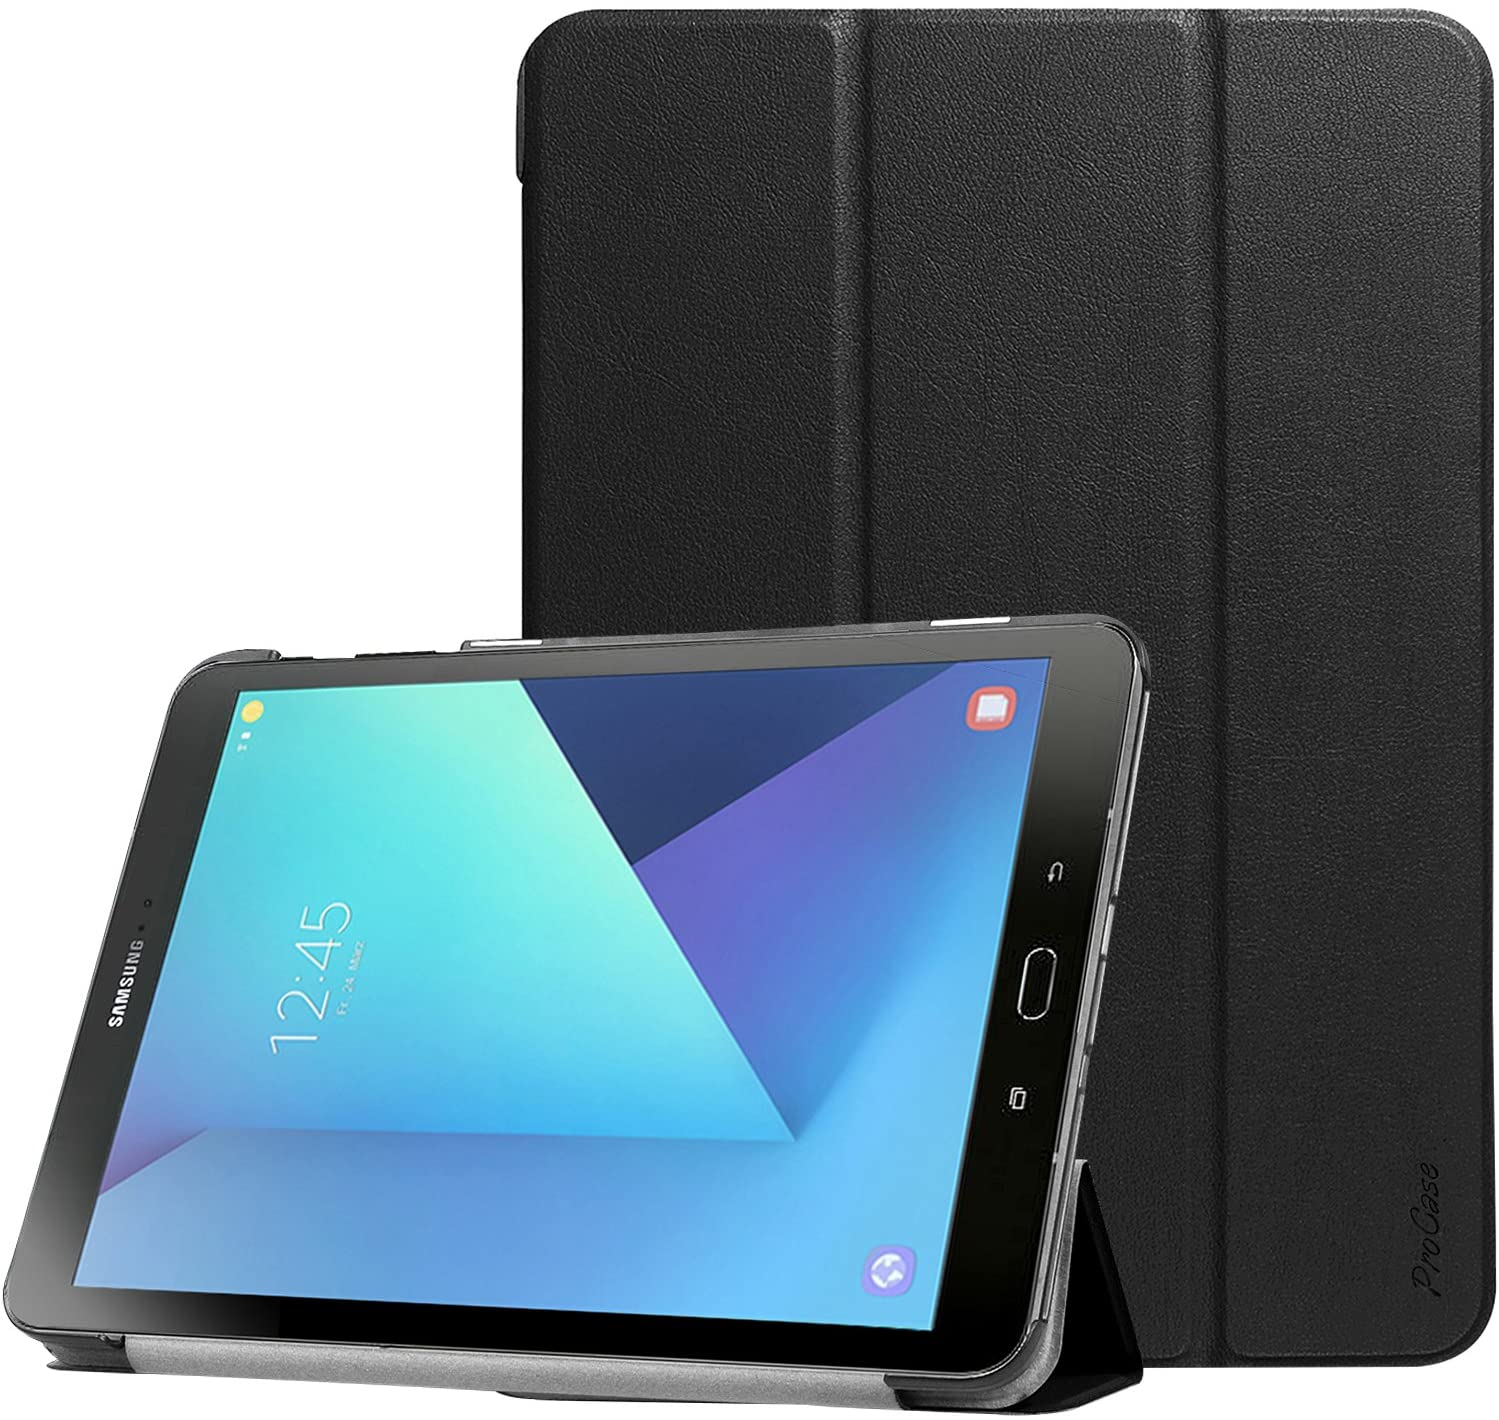 ProCase Galaxy Tab S3 9.7 Case, Slim Light Smart Cover Stand Hard Shell Case for Galaxy Tab S3 9.7-Inch Tablet SM-T820 T825 T827 (Black)